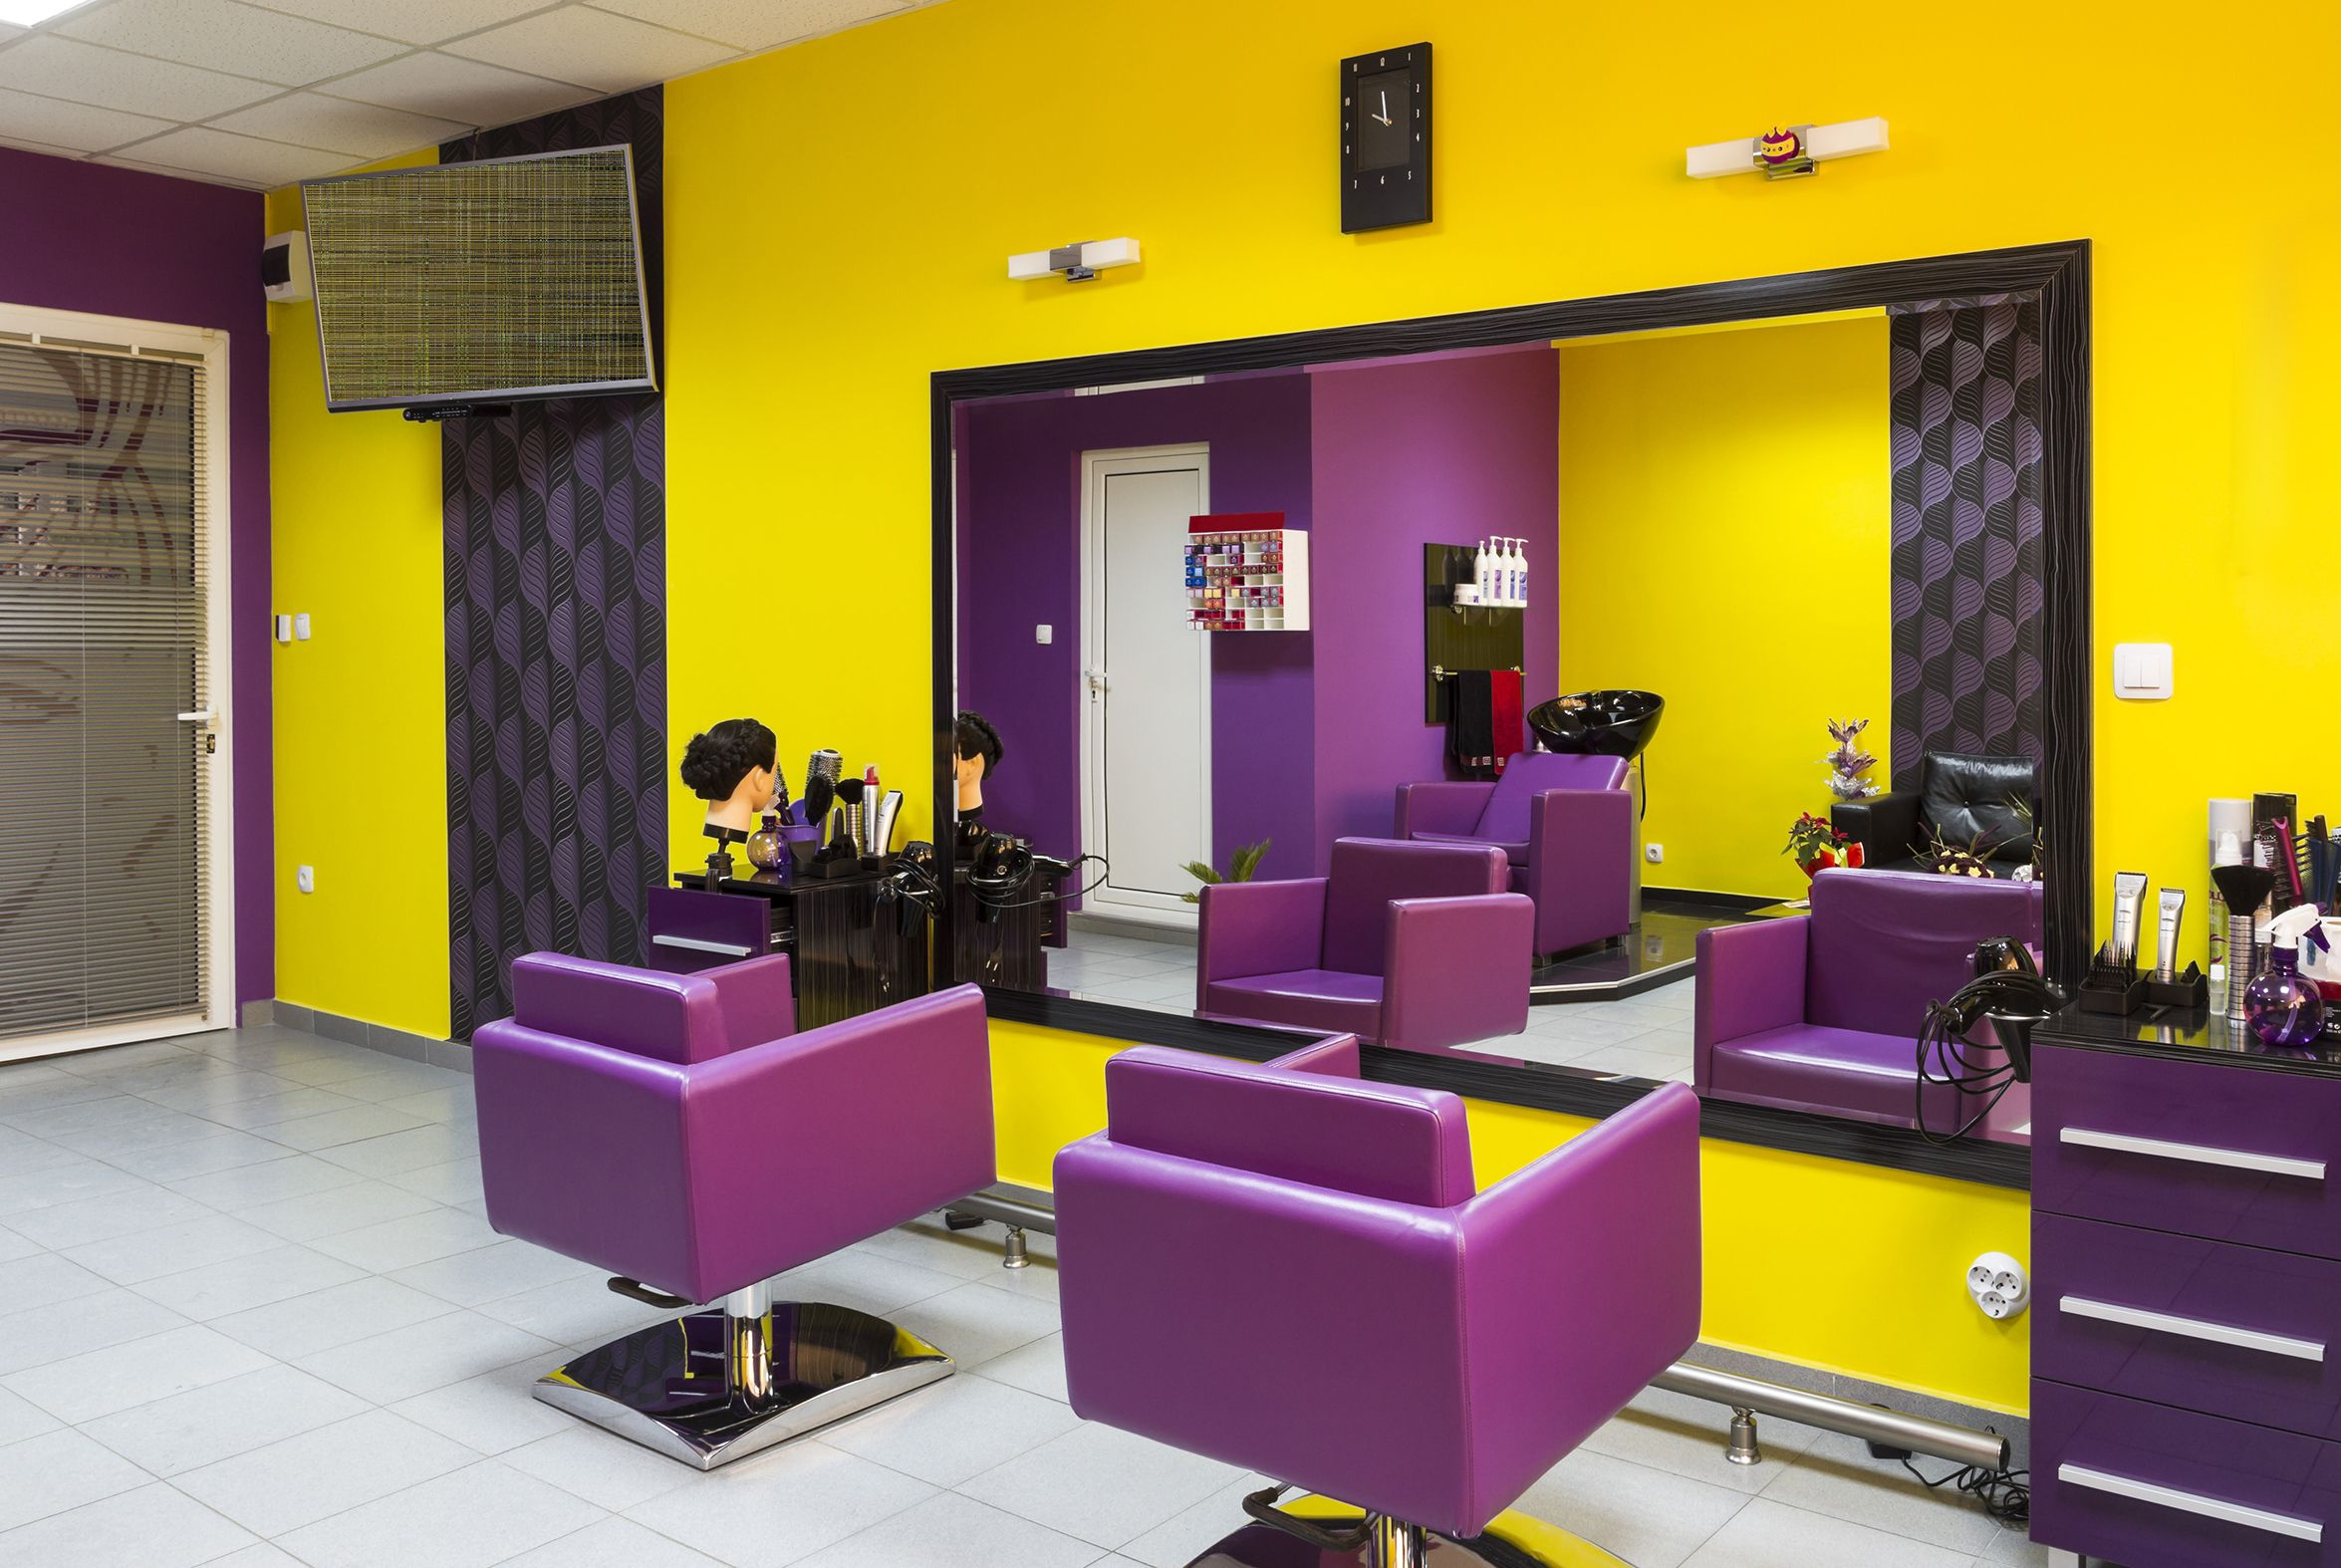 Bold Yellow And Purple Are Perfect Wall Colors For This